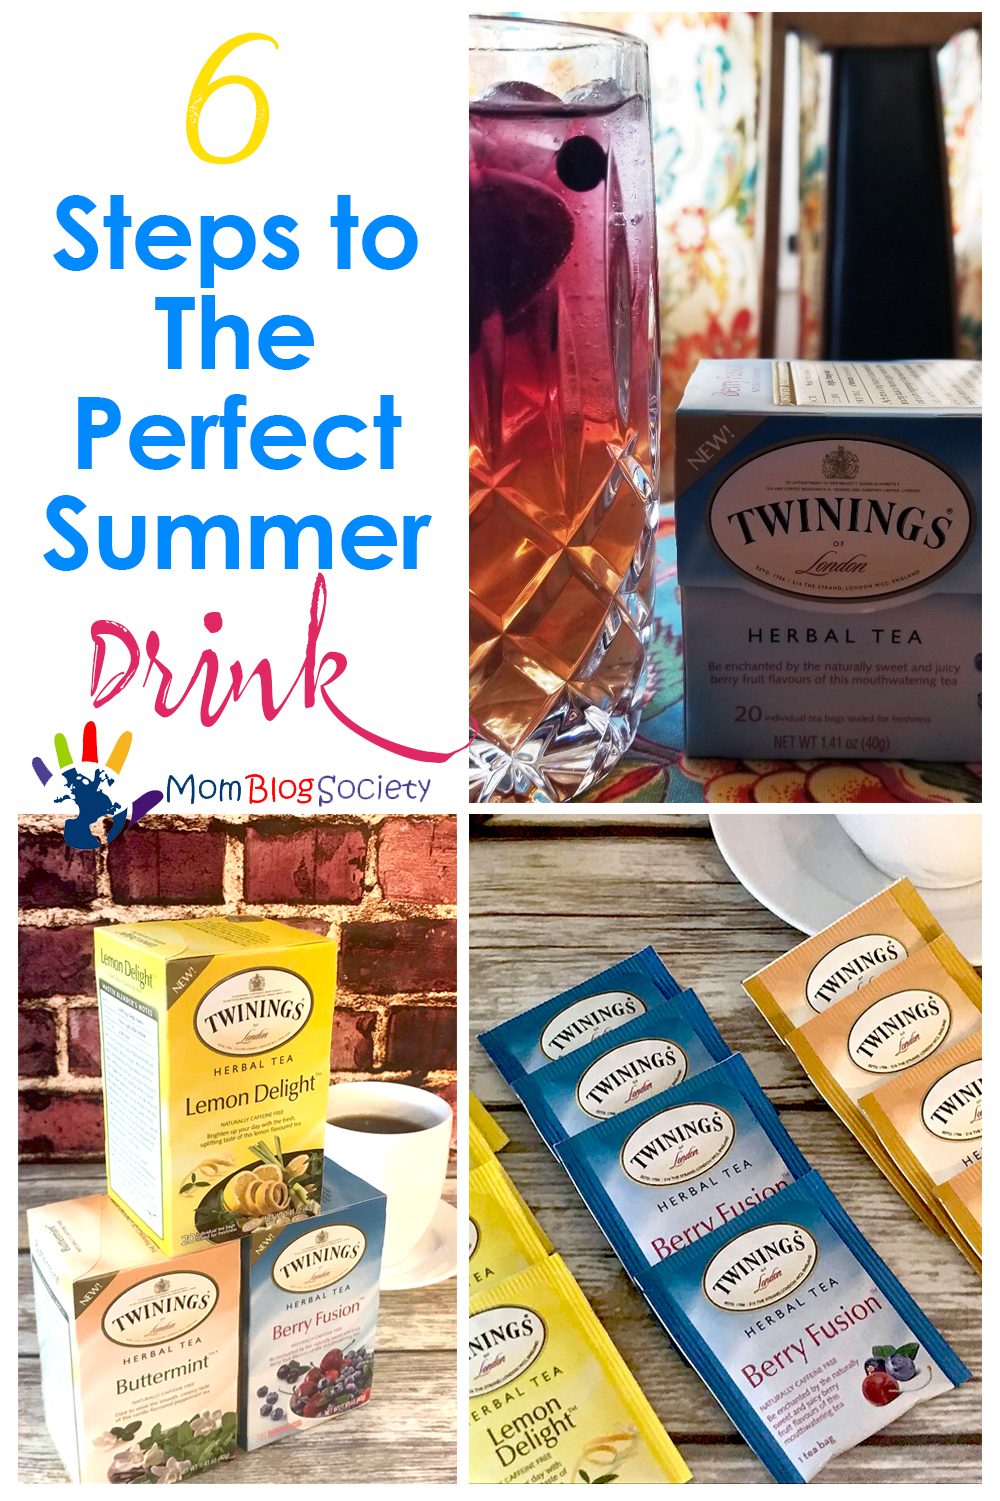 6 Steps to The Perfect Summer Drink